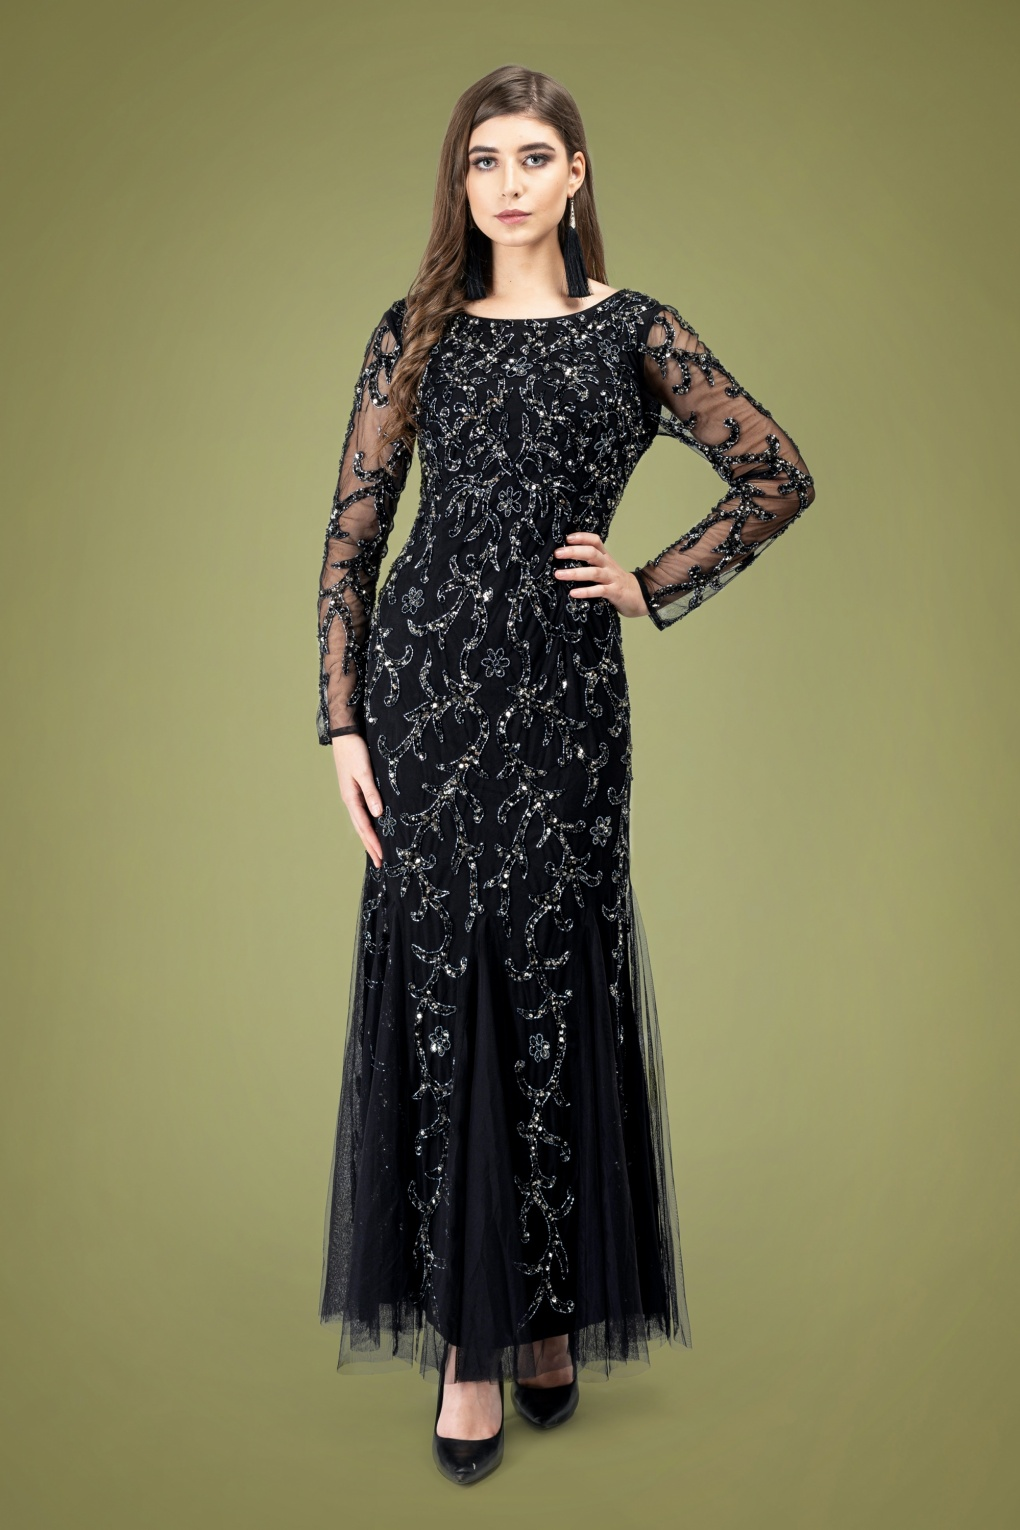 1920s Evening Dresses & Formal Gowns 20s Ava Full Sleeve Sequin Maxi Dress in Black £146.74 AT vintagedancer.com